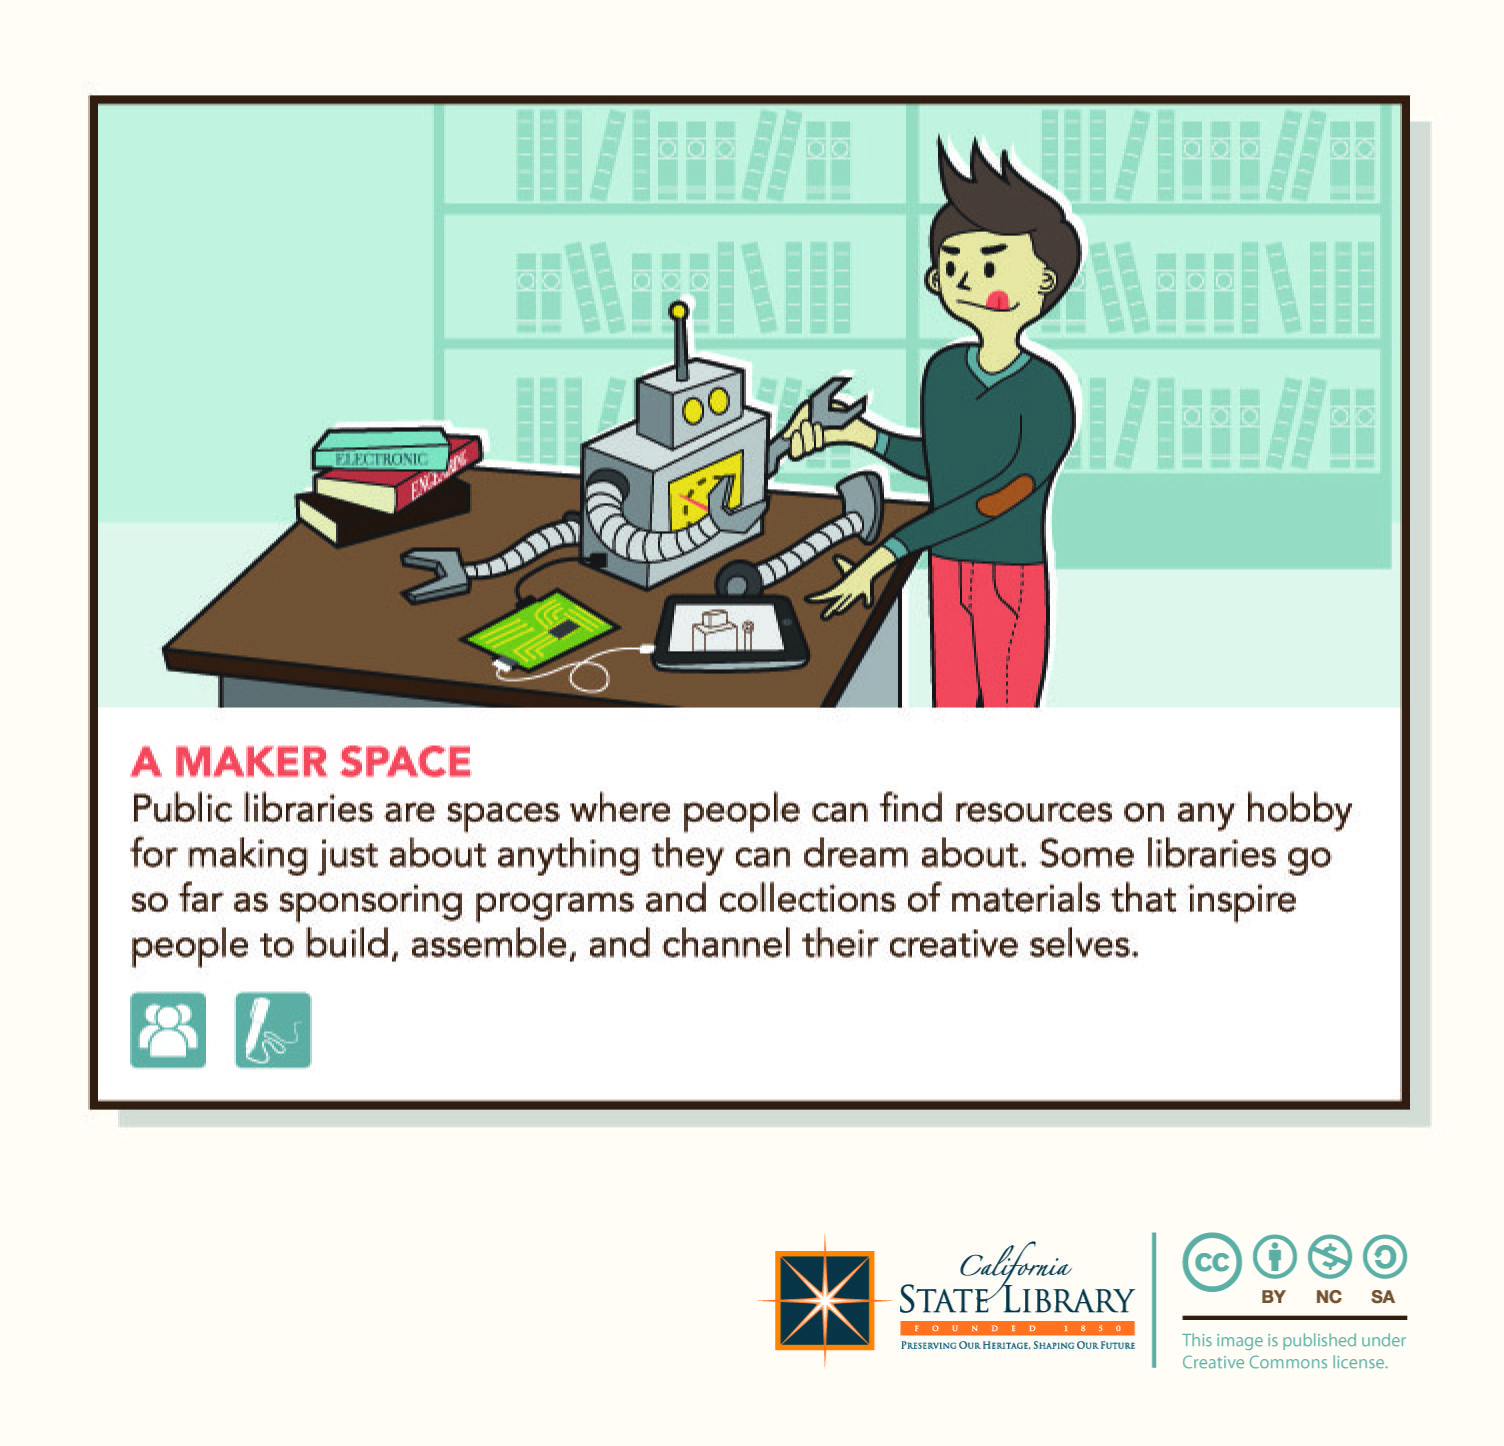 A maker space public libraries are spaces where people can find resources on any hobby